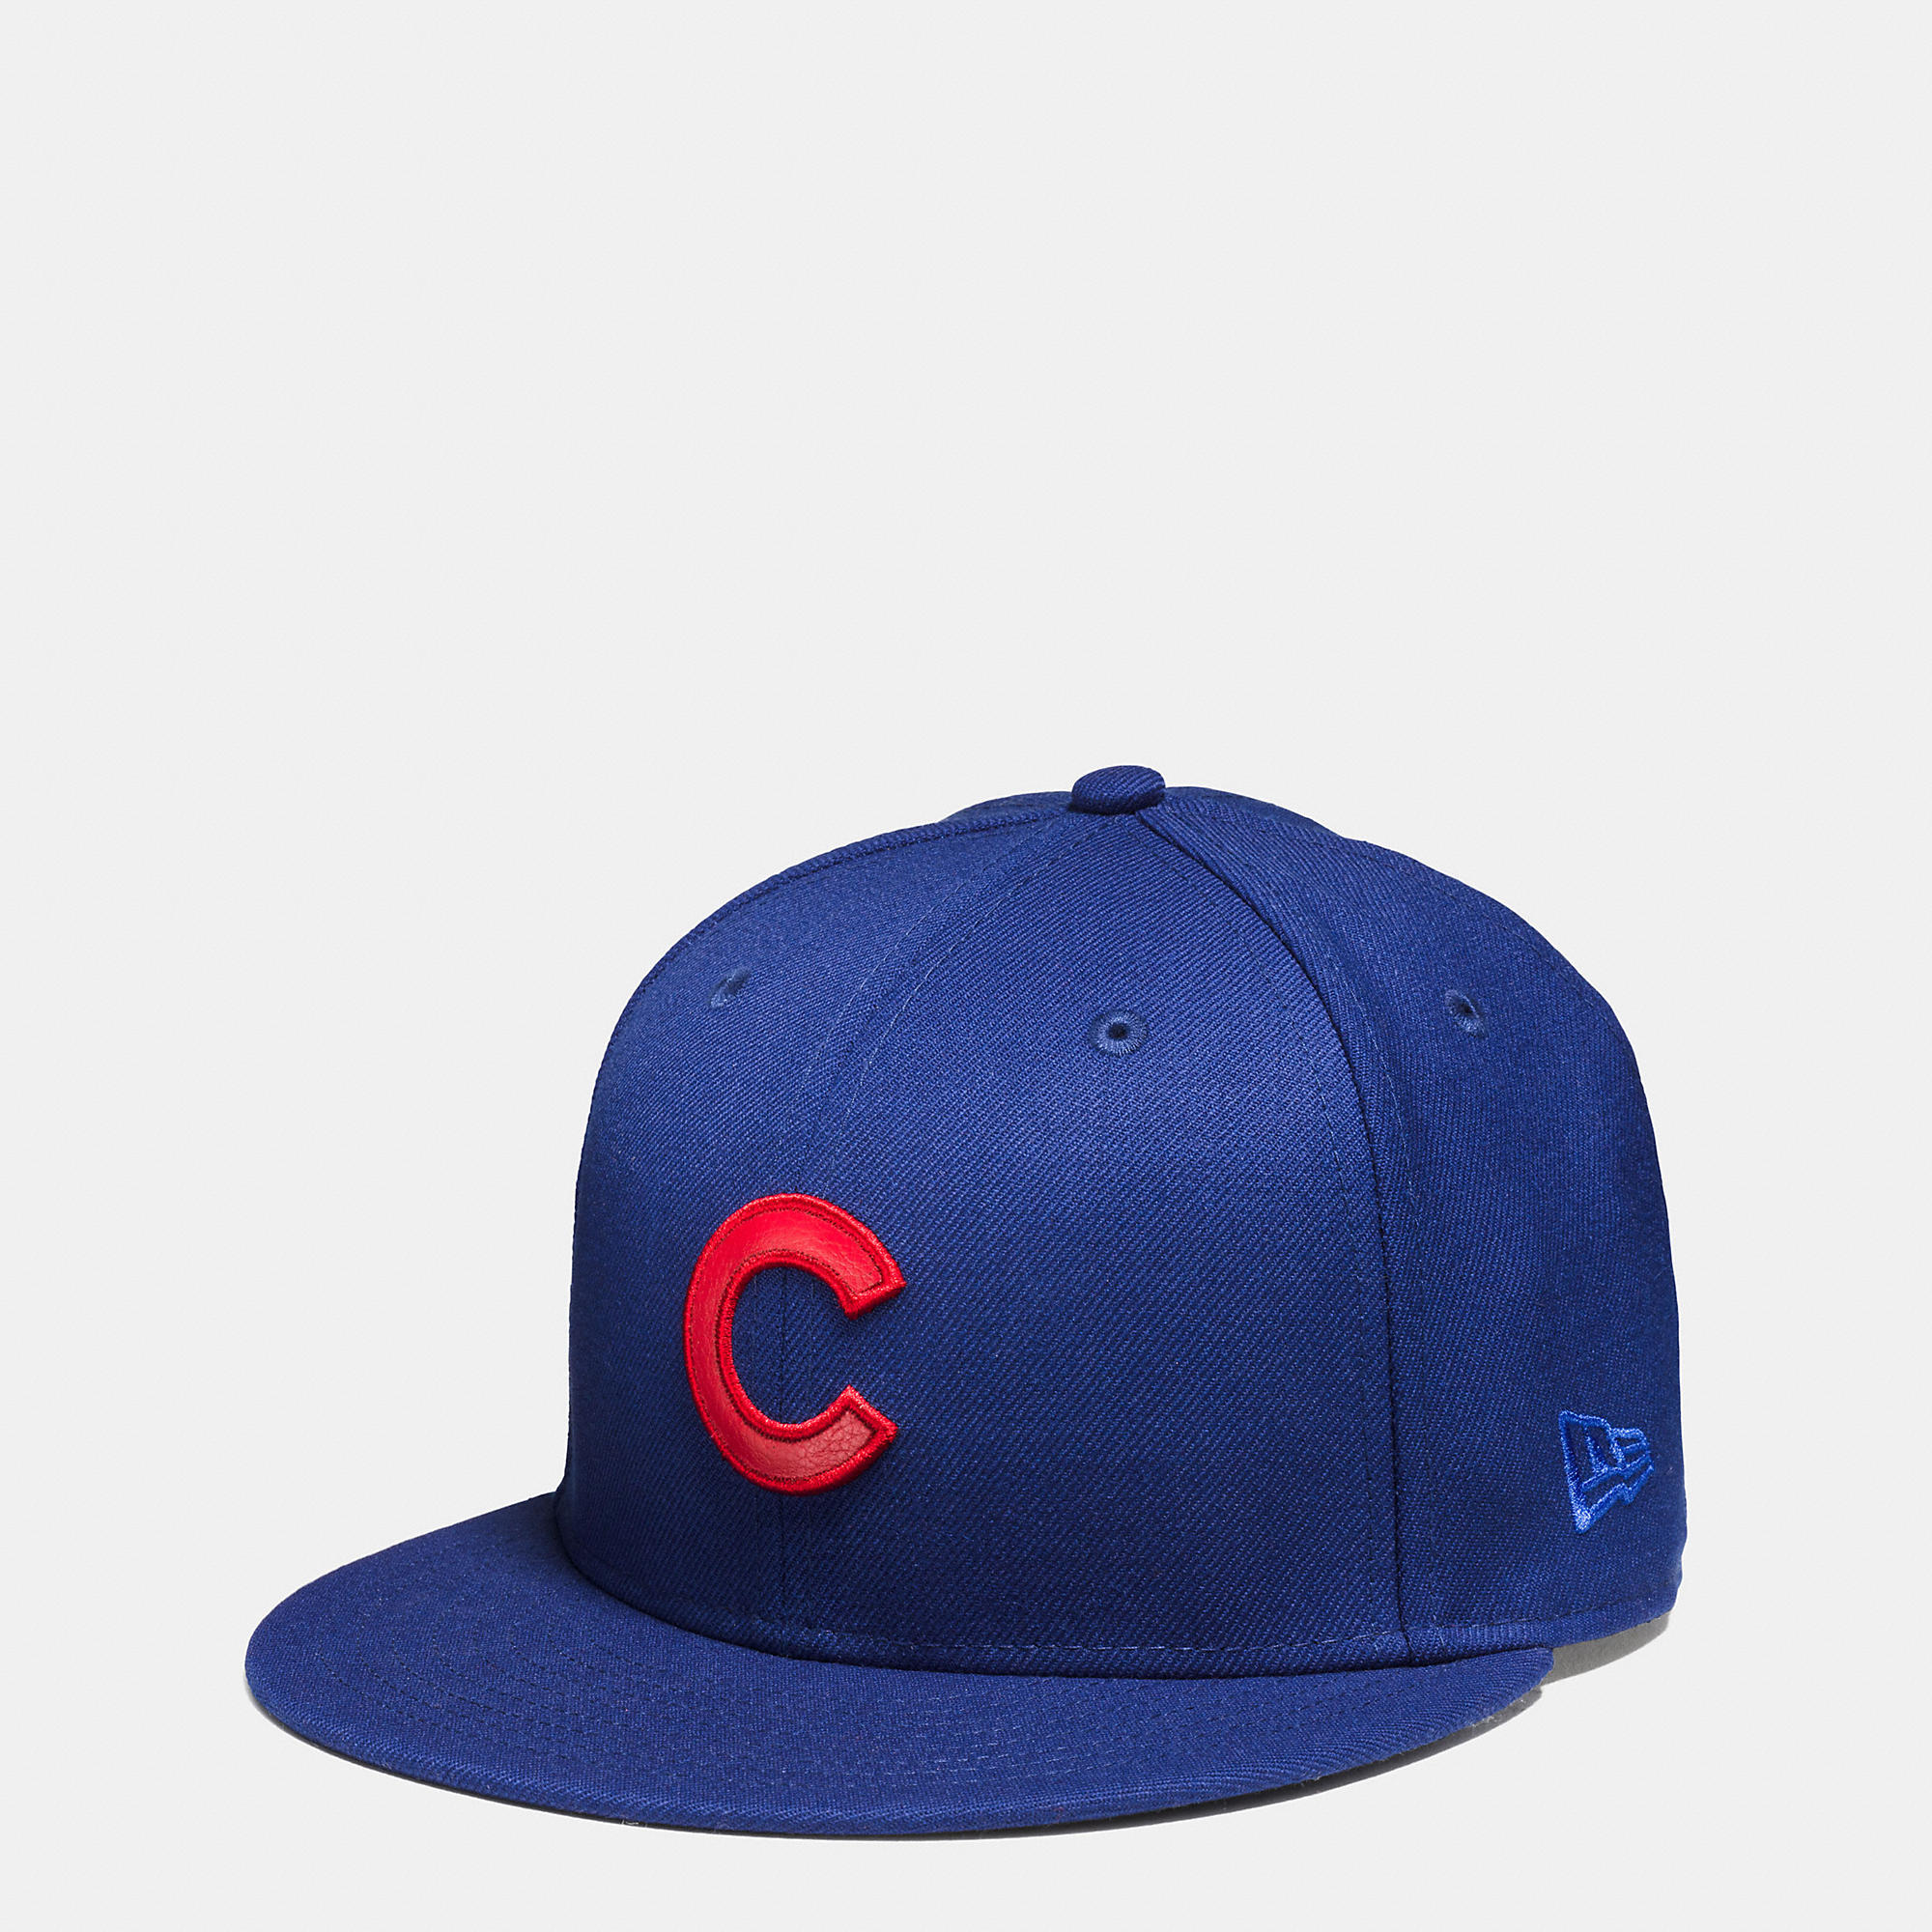 Coach New Era Mlb Flat Brim Hat